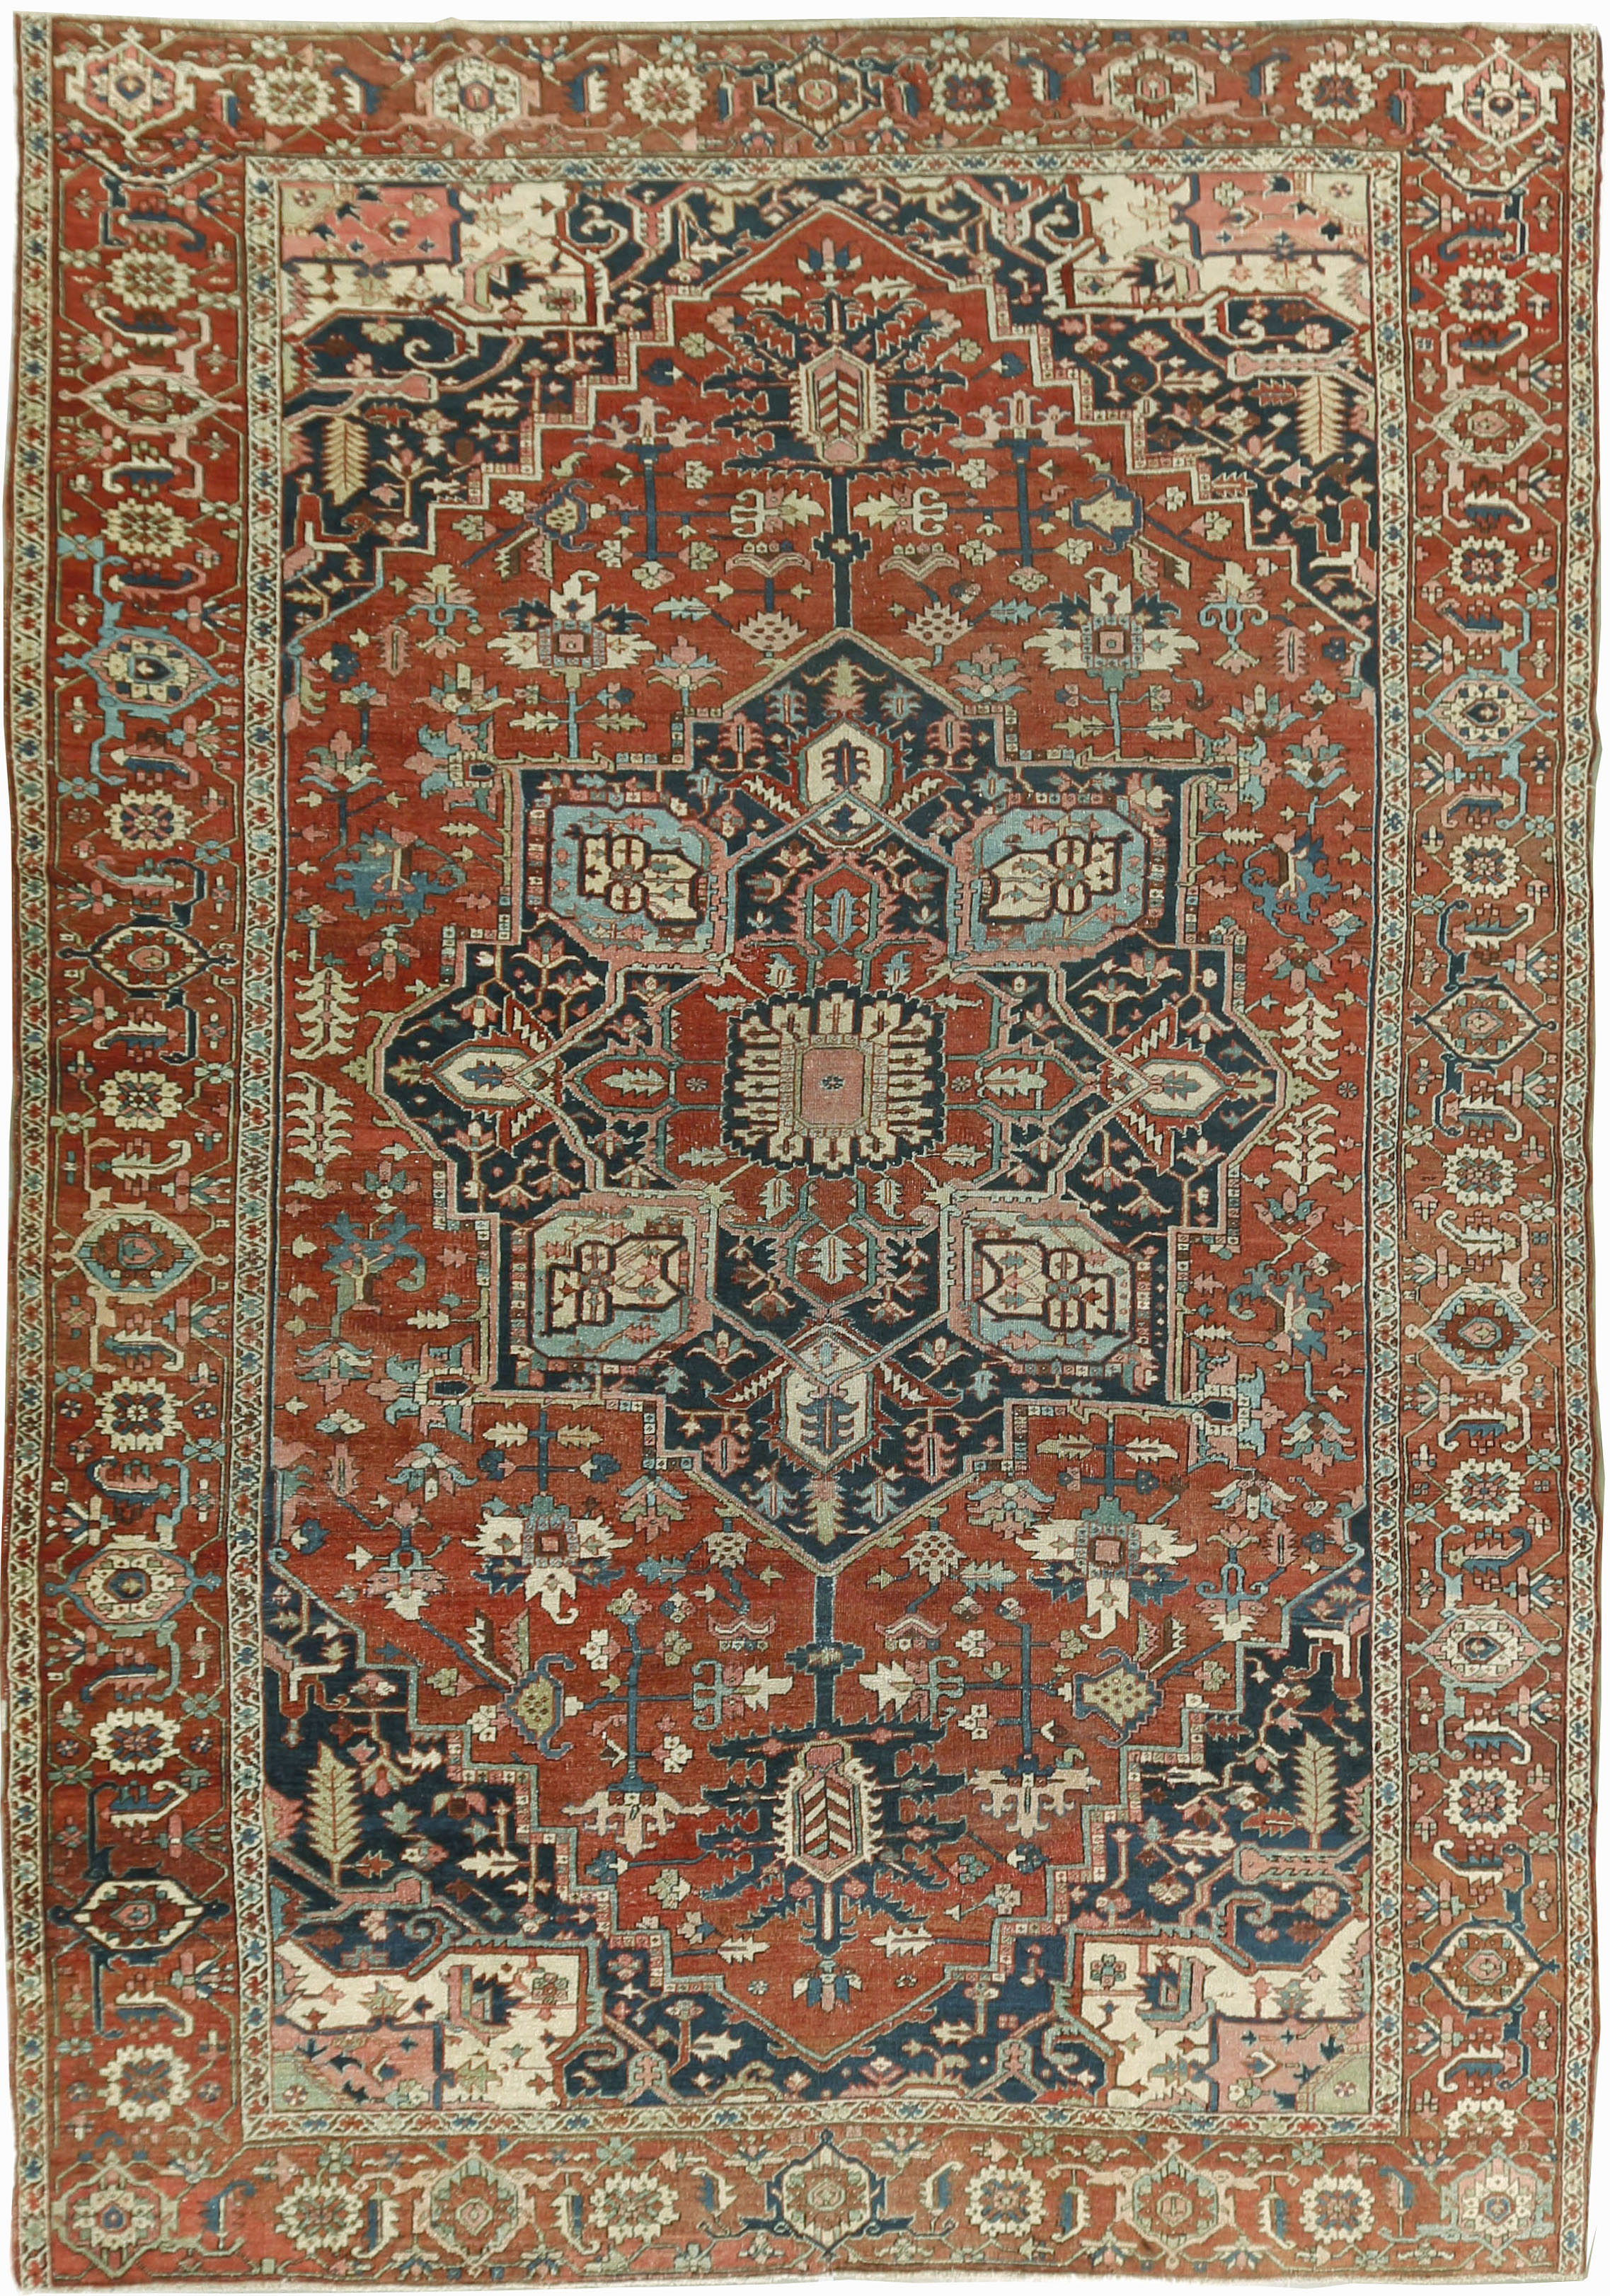 Geometric Antique Persian Heriz Serapi Rug U 1613